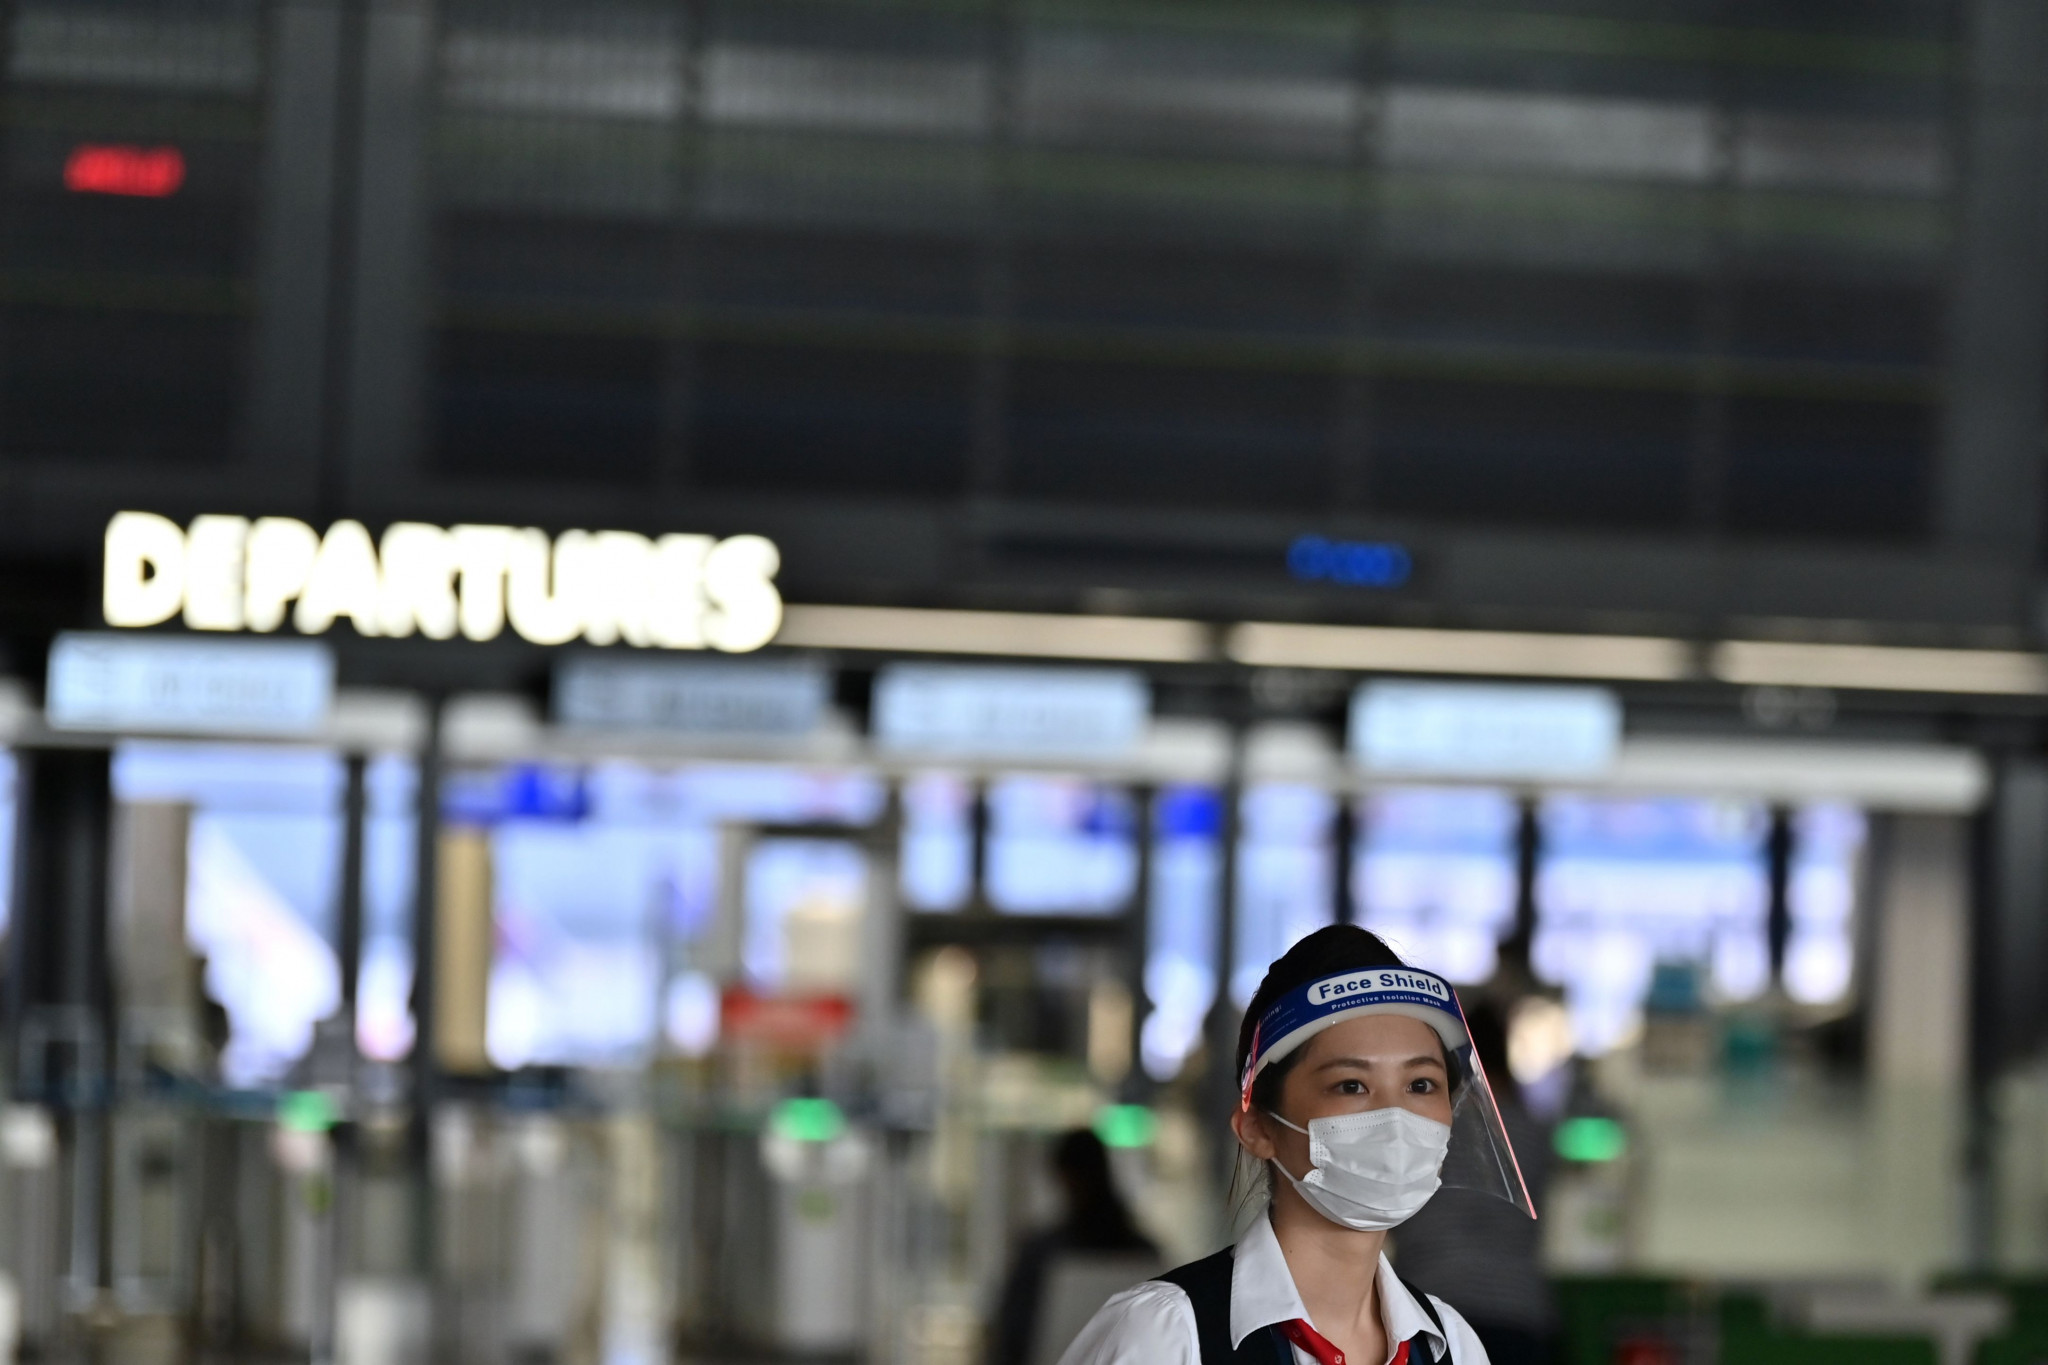 Japan currently has travel restrictions in place to counter COVID-19 ©Getty Images